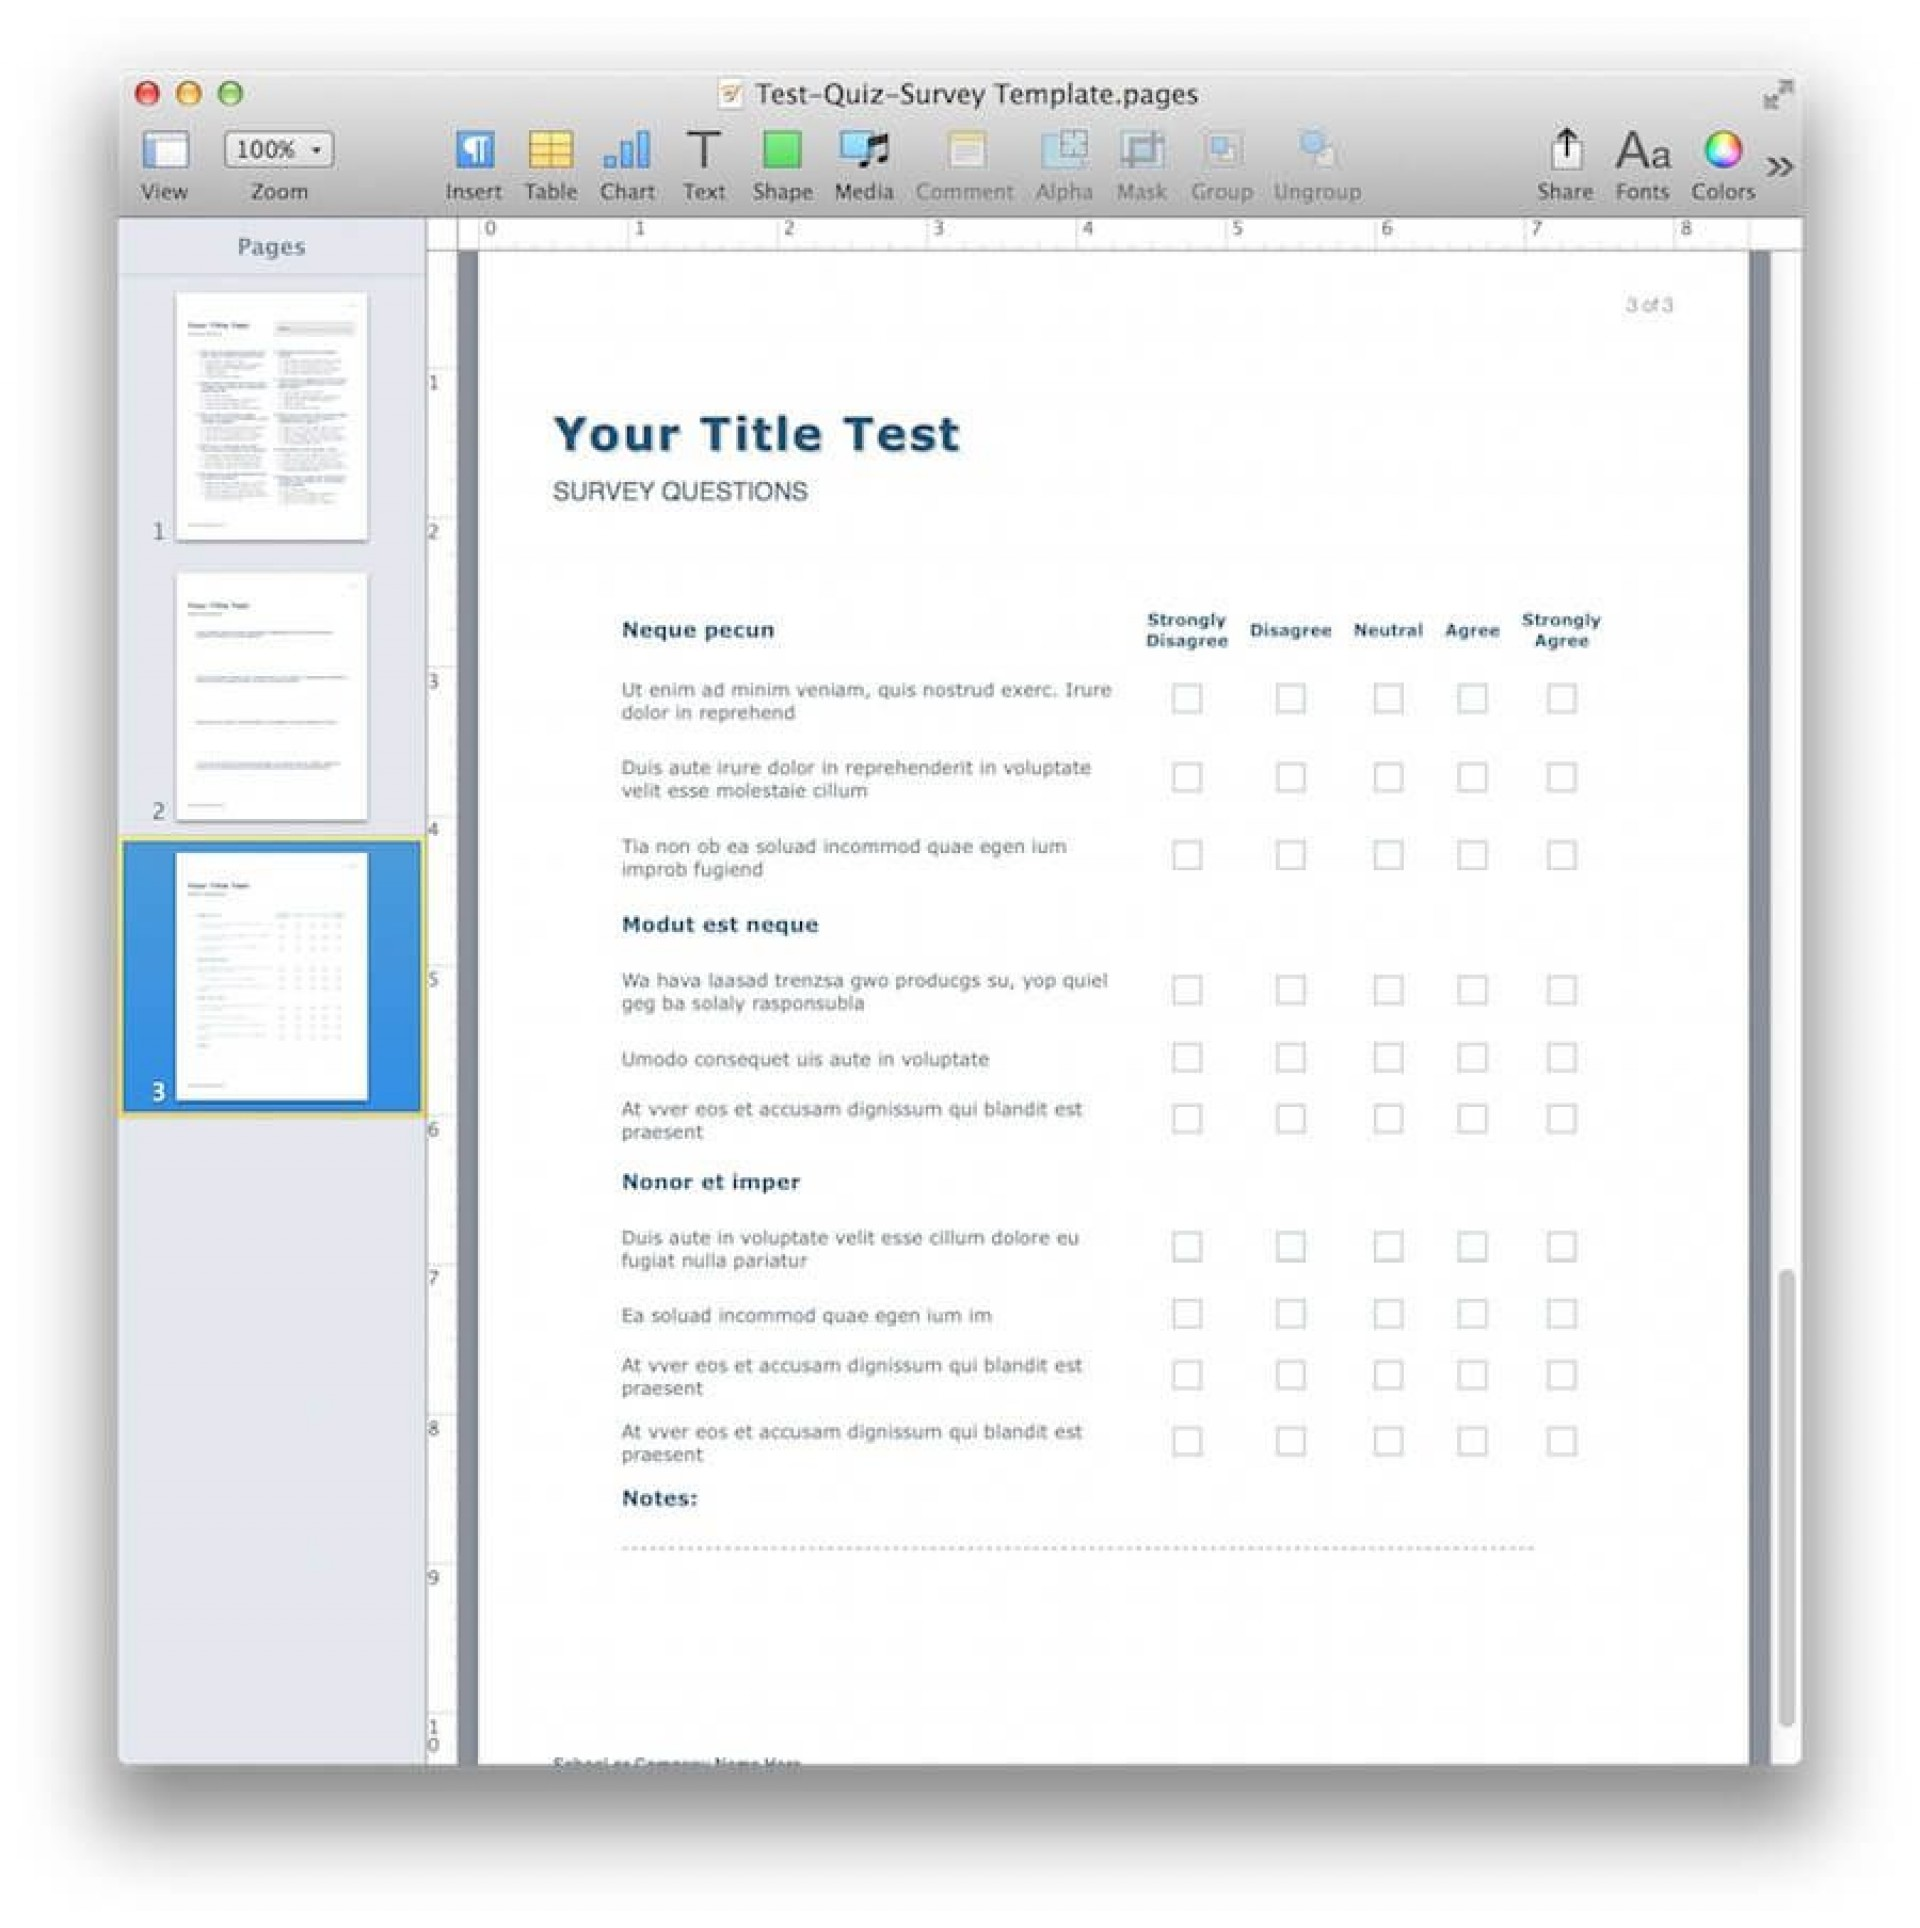 009 Phenomenal Addres Label Template For Mac Page Sample  Return Avery 51601920